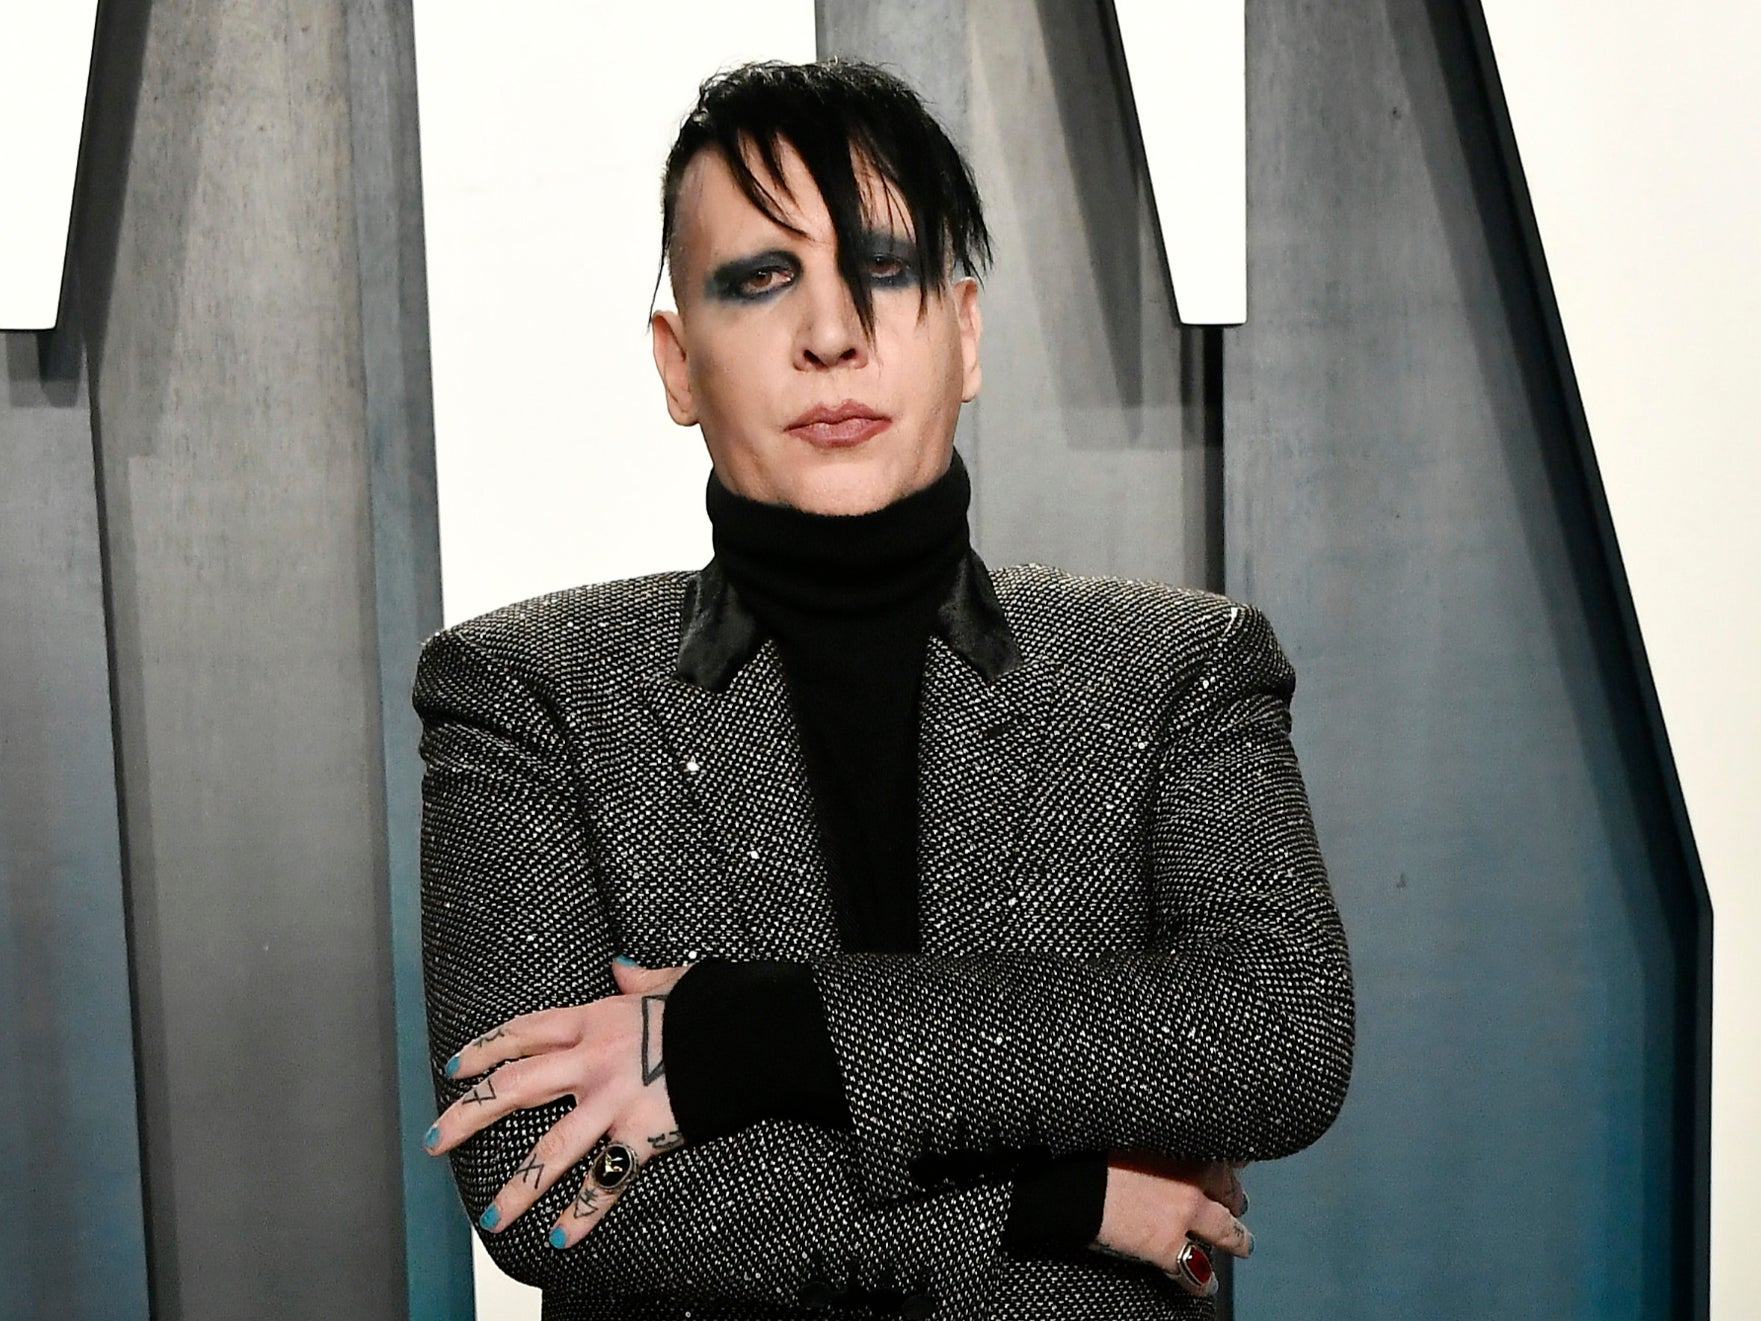 The Marilyn Manson accusations are disturbing – but they are a grimly familiar story for the music industry